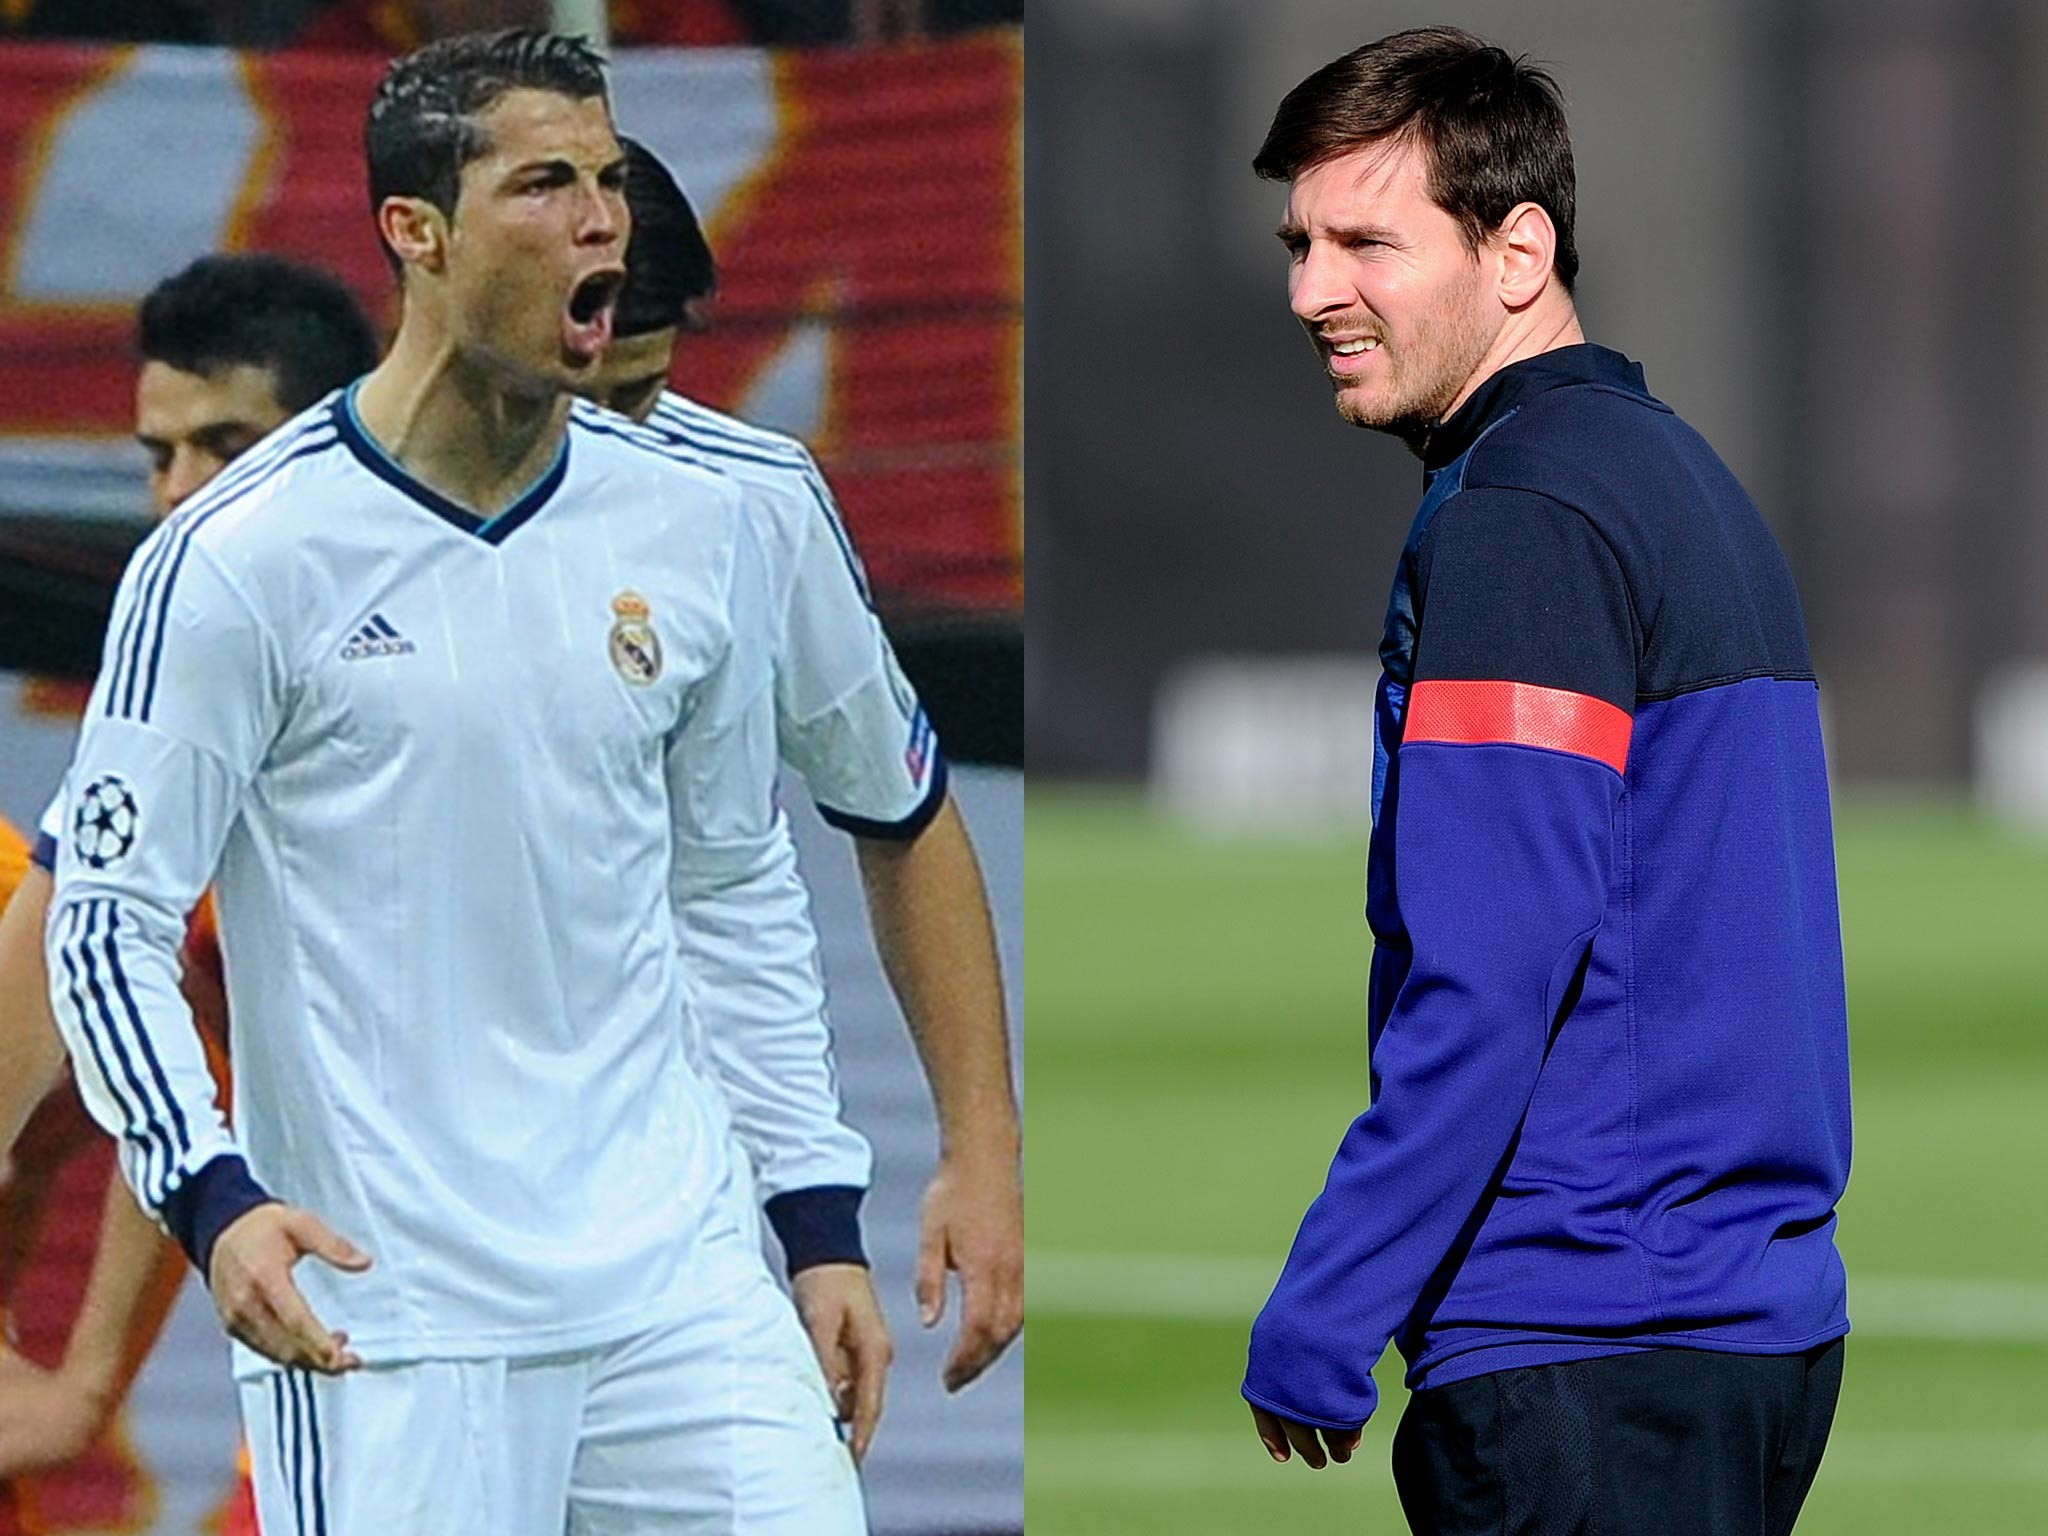 2048x1536 Lionel Messi v Cristiano Ronaldo - world's greatest players locked in new  battle | The Independent